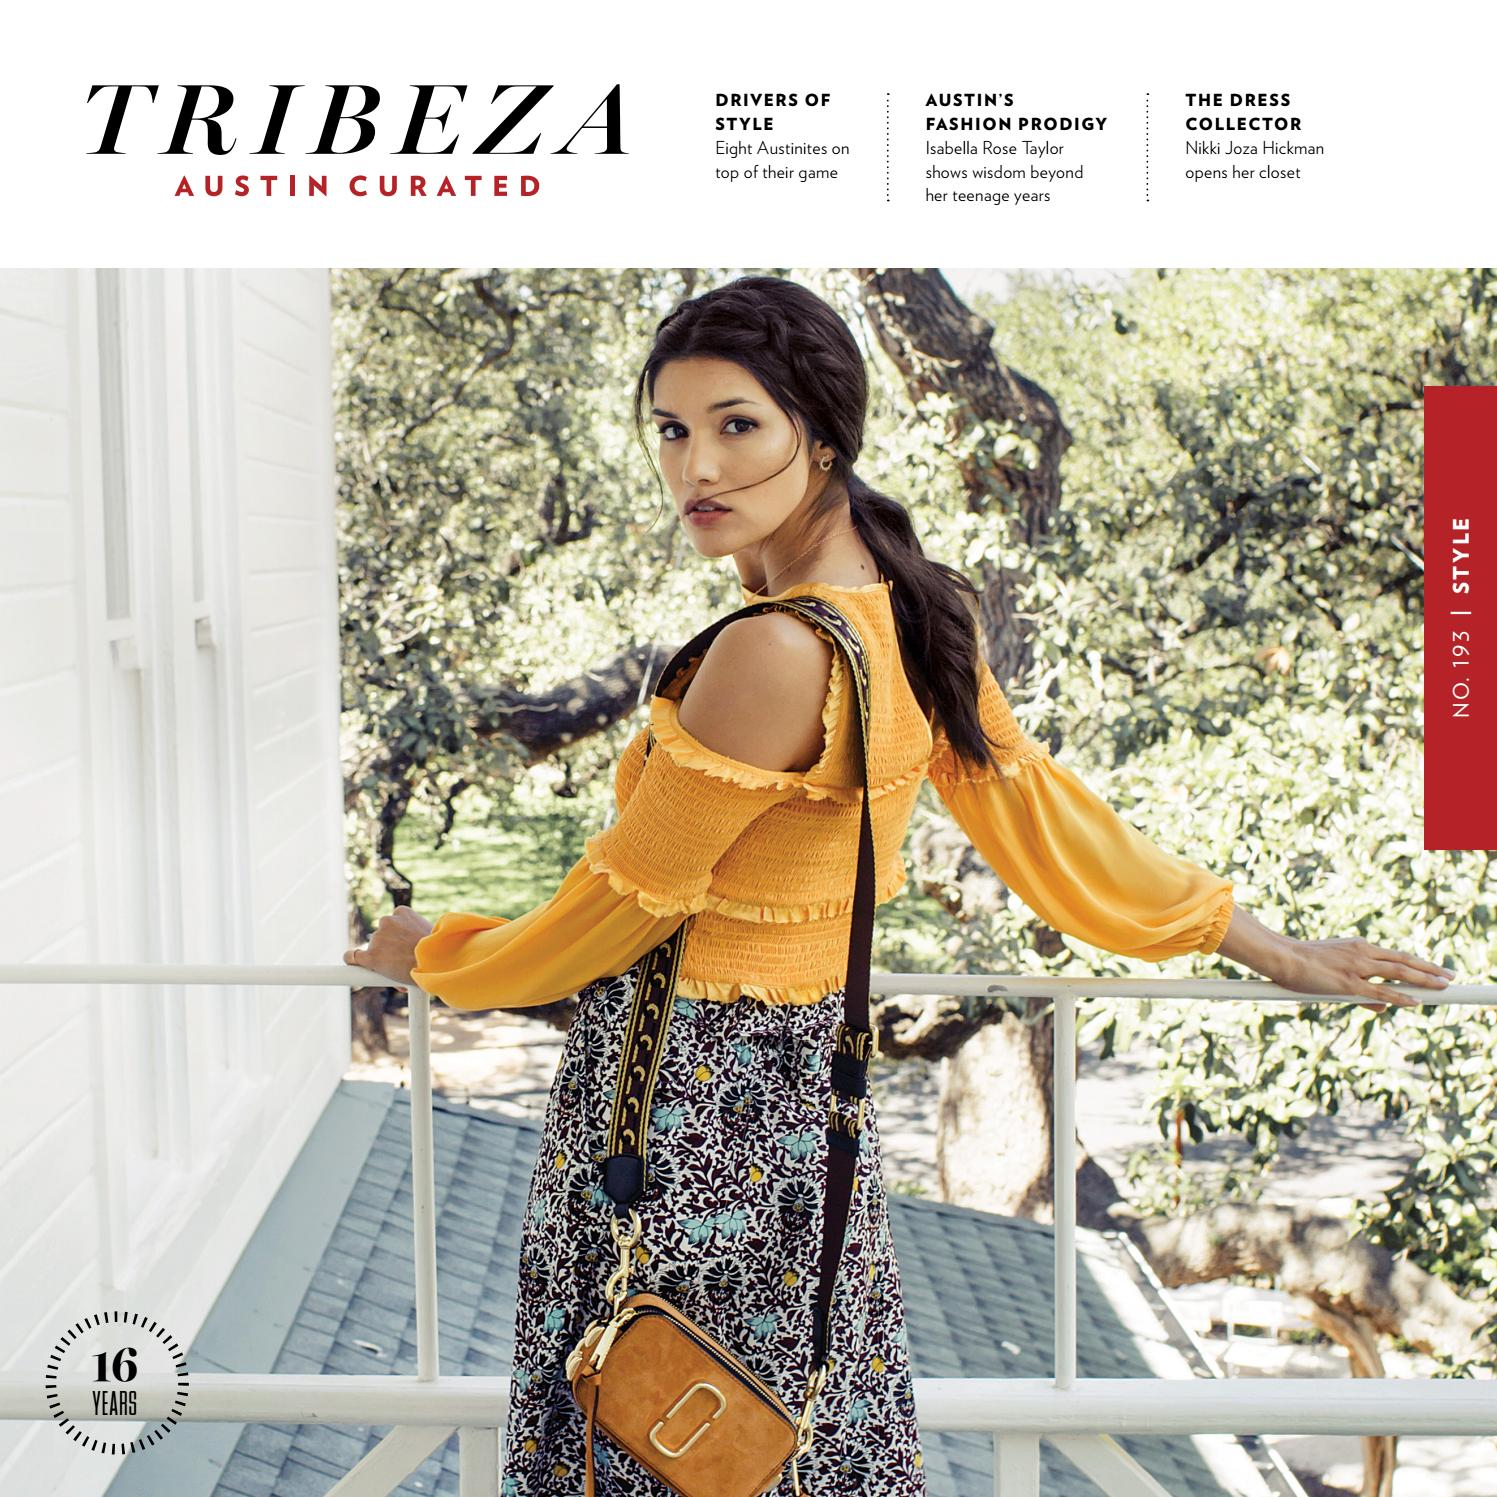 8b6304823f1 TRIBEZA September 2017 by TRIBEZA Austin Curated - issuu